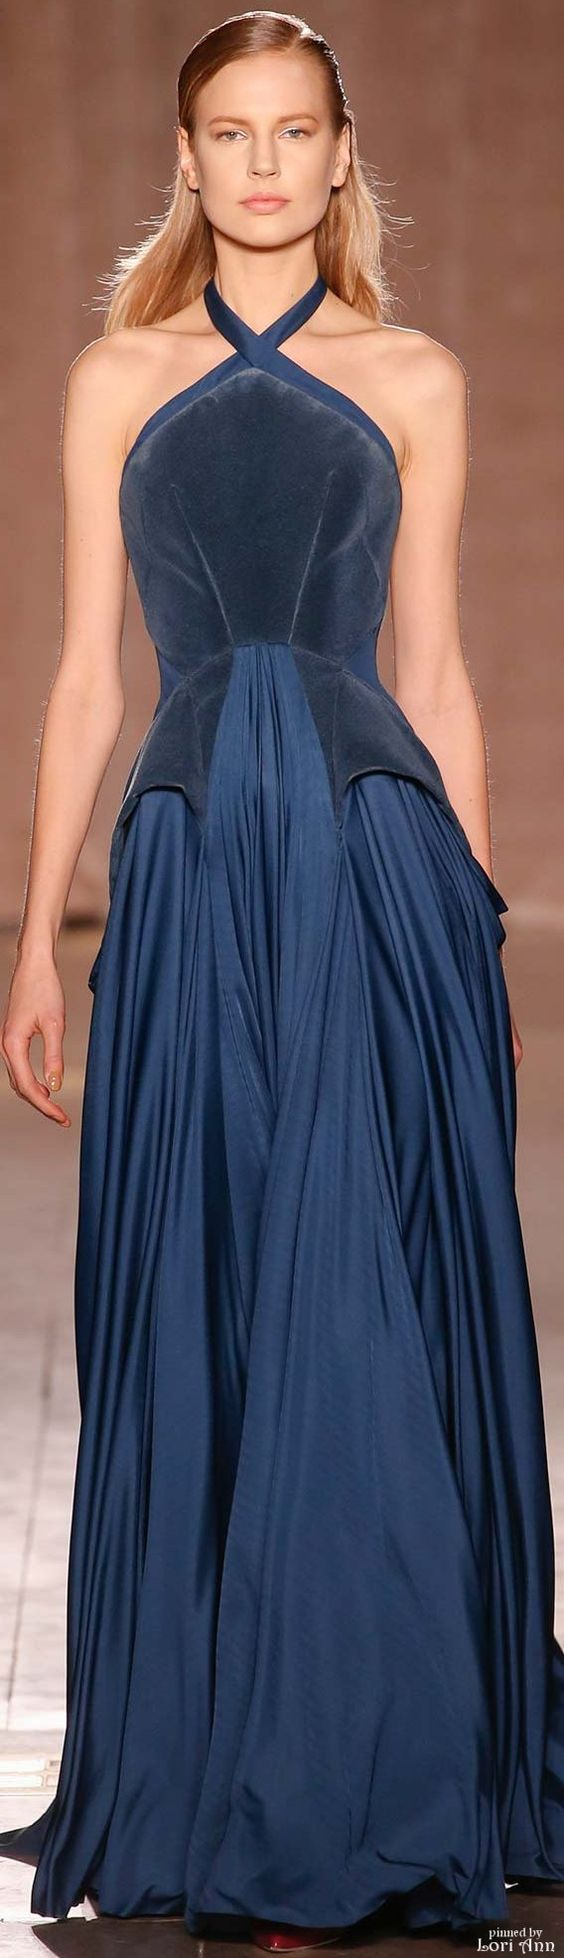 Zac Posen Fall 2015 RTW----'Elizabethan inspired design' JT https://www.pinterest.com/jthomasson0281/inspiring-fashion/